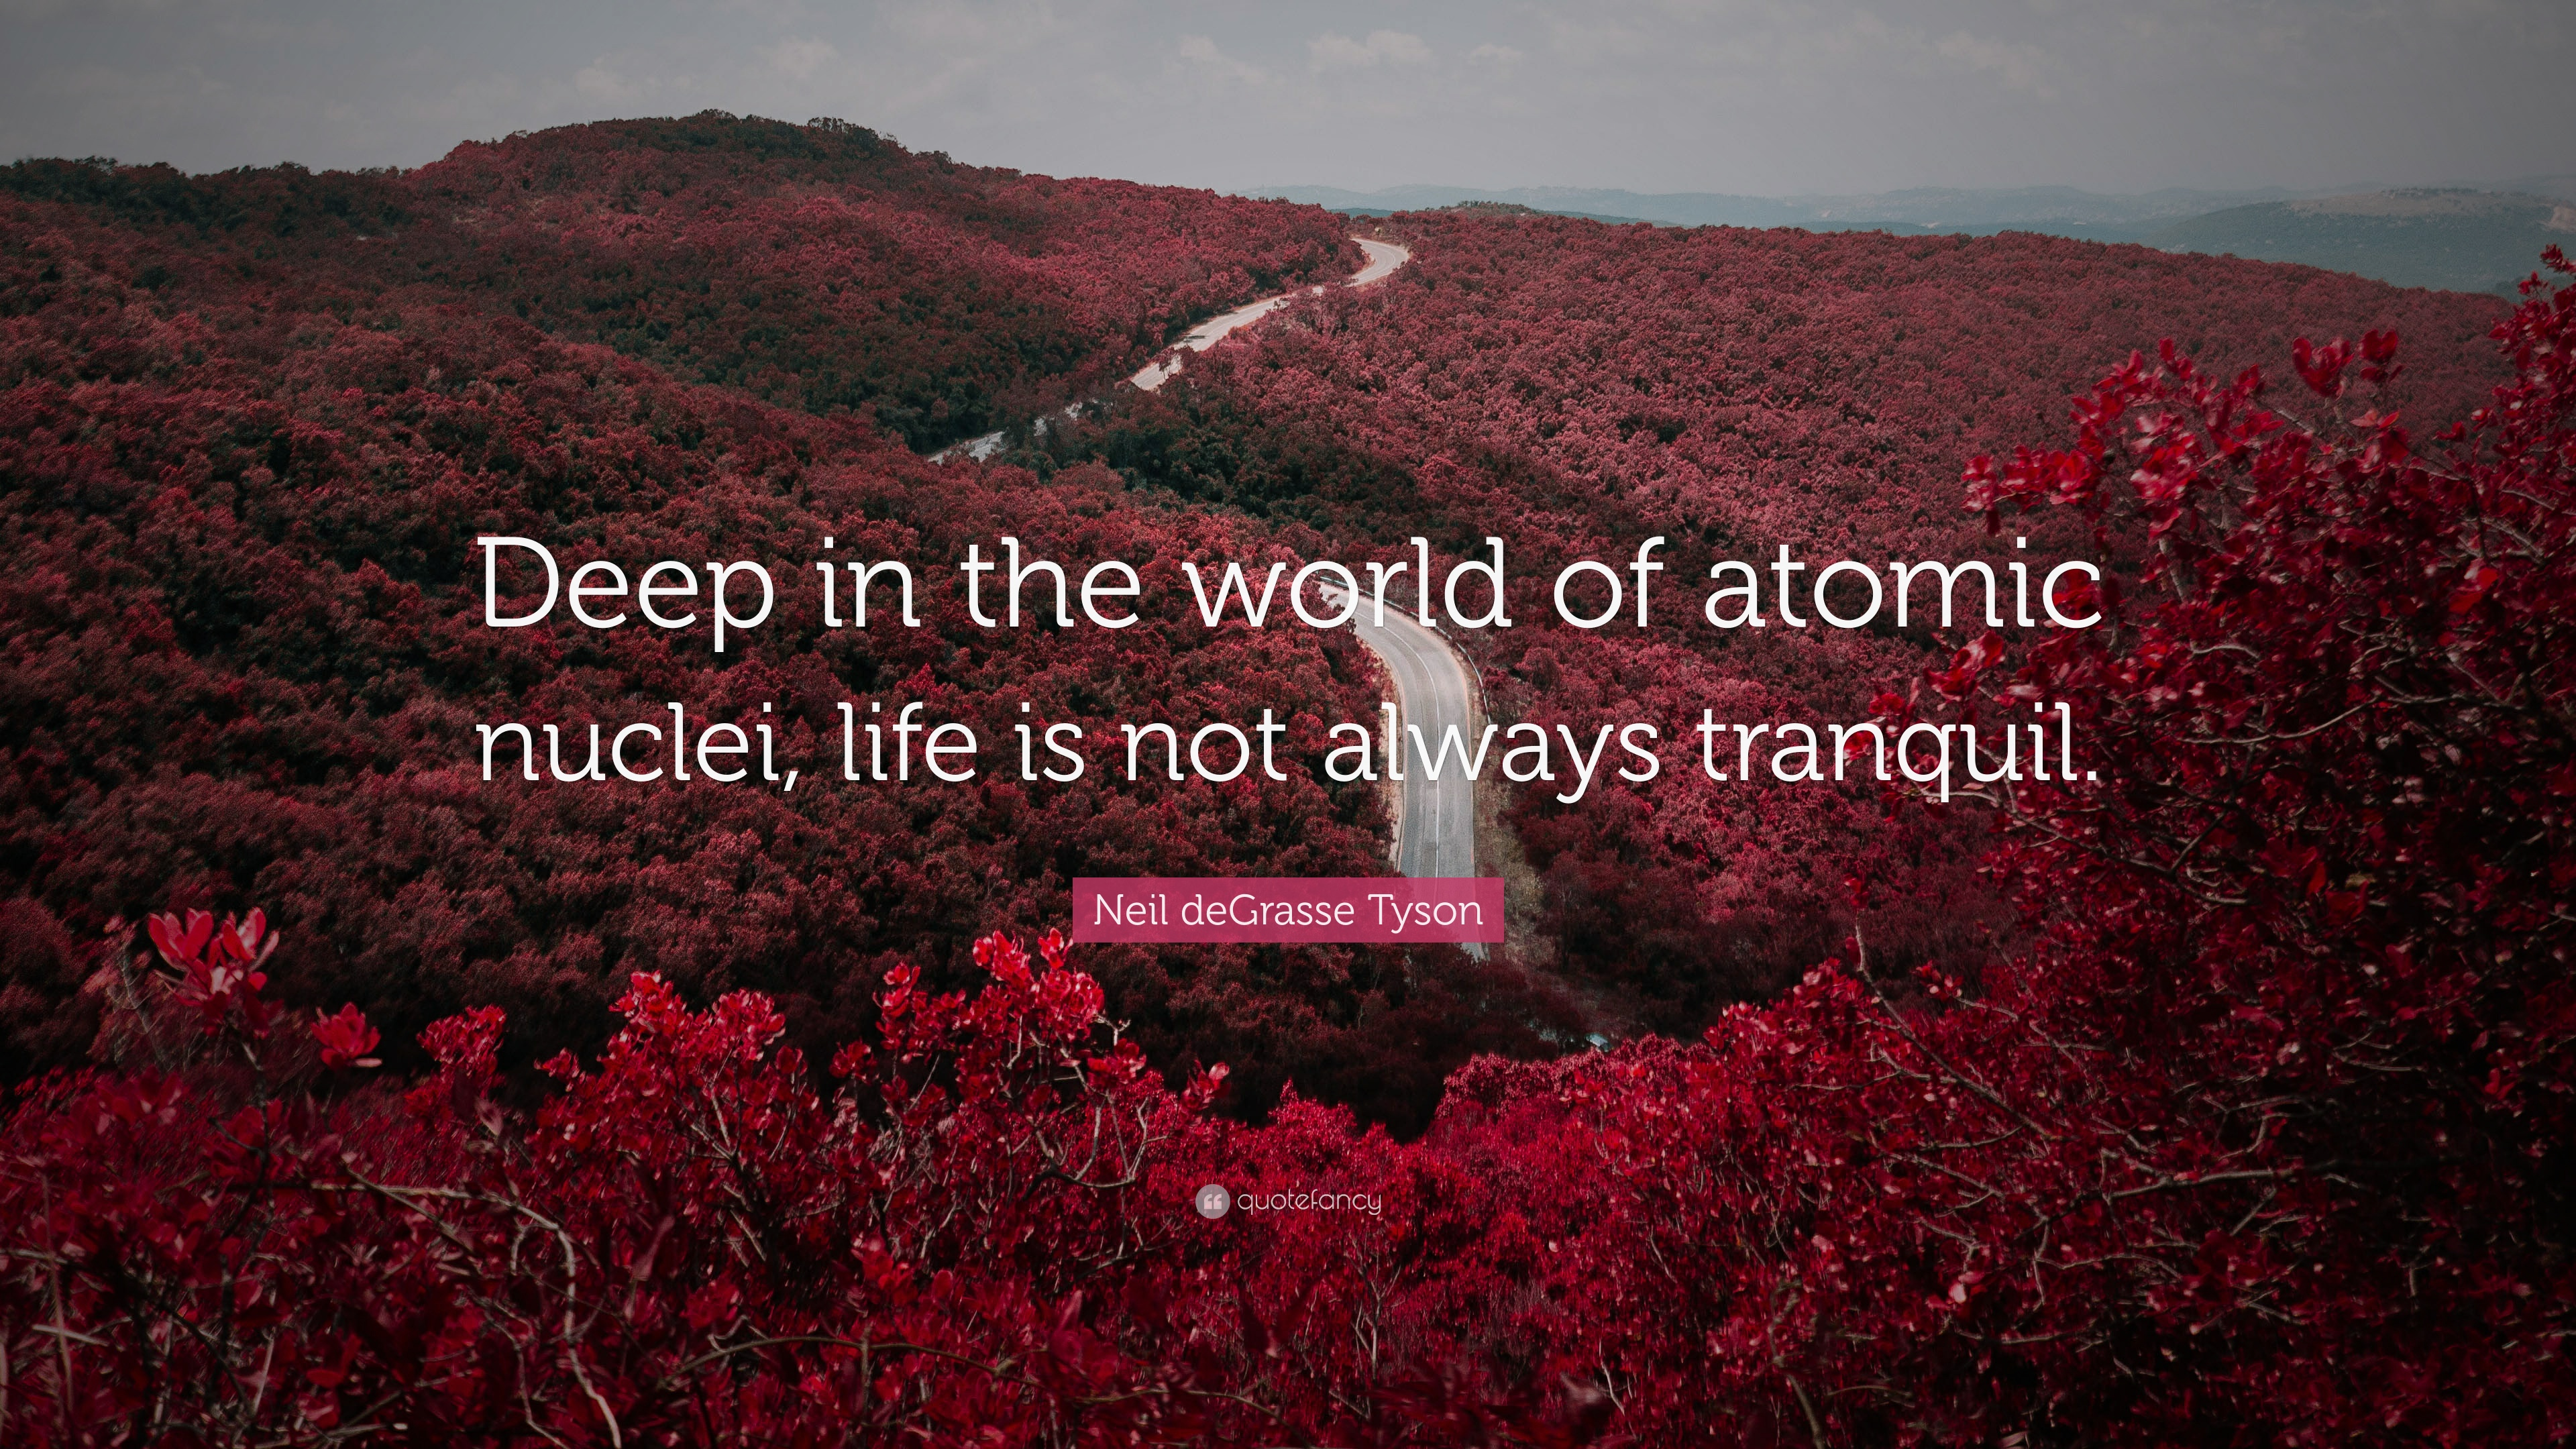 Neil DeGrasse Tyson Quote Deep In The World Of Atomic Nuclei Life Is